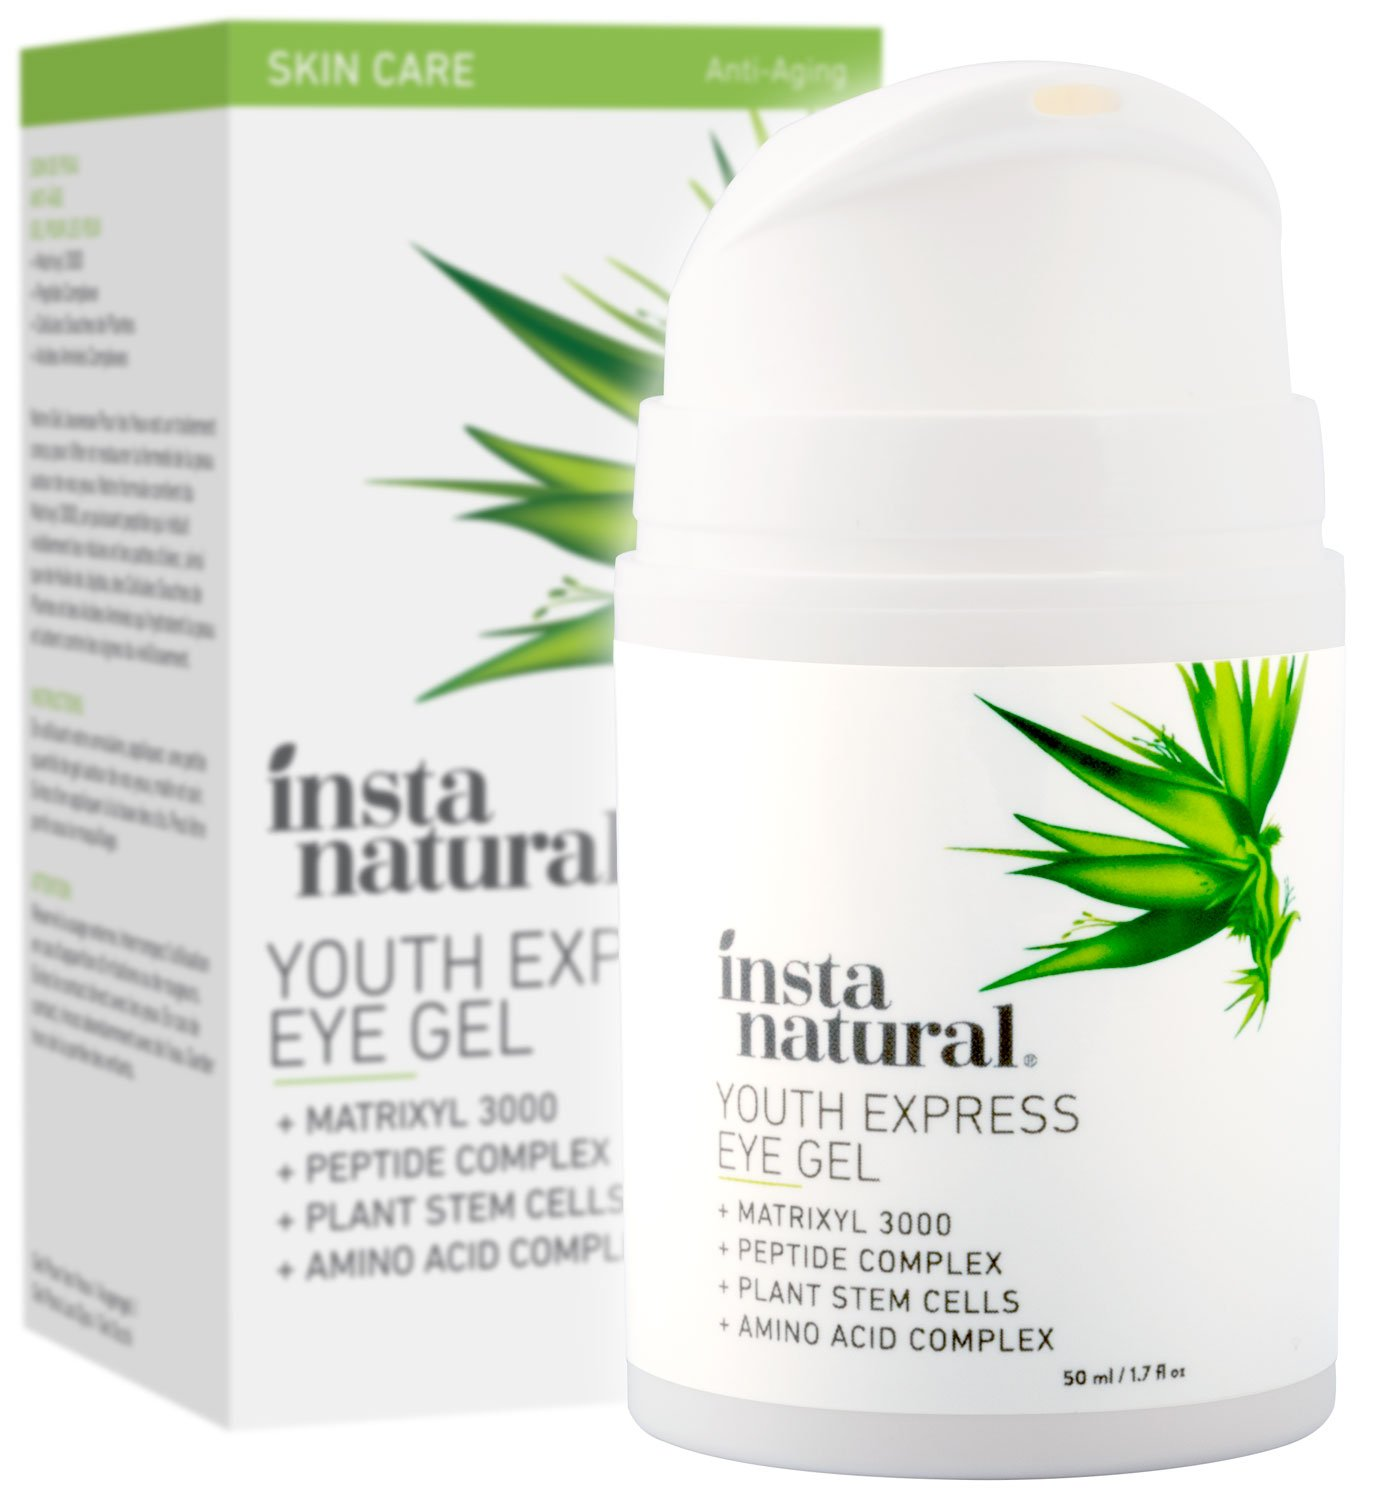 InstaNatural - Eye Gel Cream - Wrinkle, Dark Circle, Fine Line & Redness Reducer - Pure & Organic Anti Aging Blend for Men & Women with Hyaluronic Acid - Fight Bags & Lift Skin Under Eyes - 1.7 oz